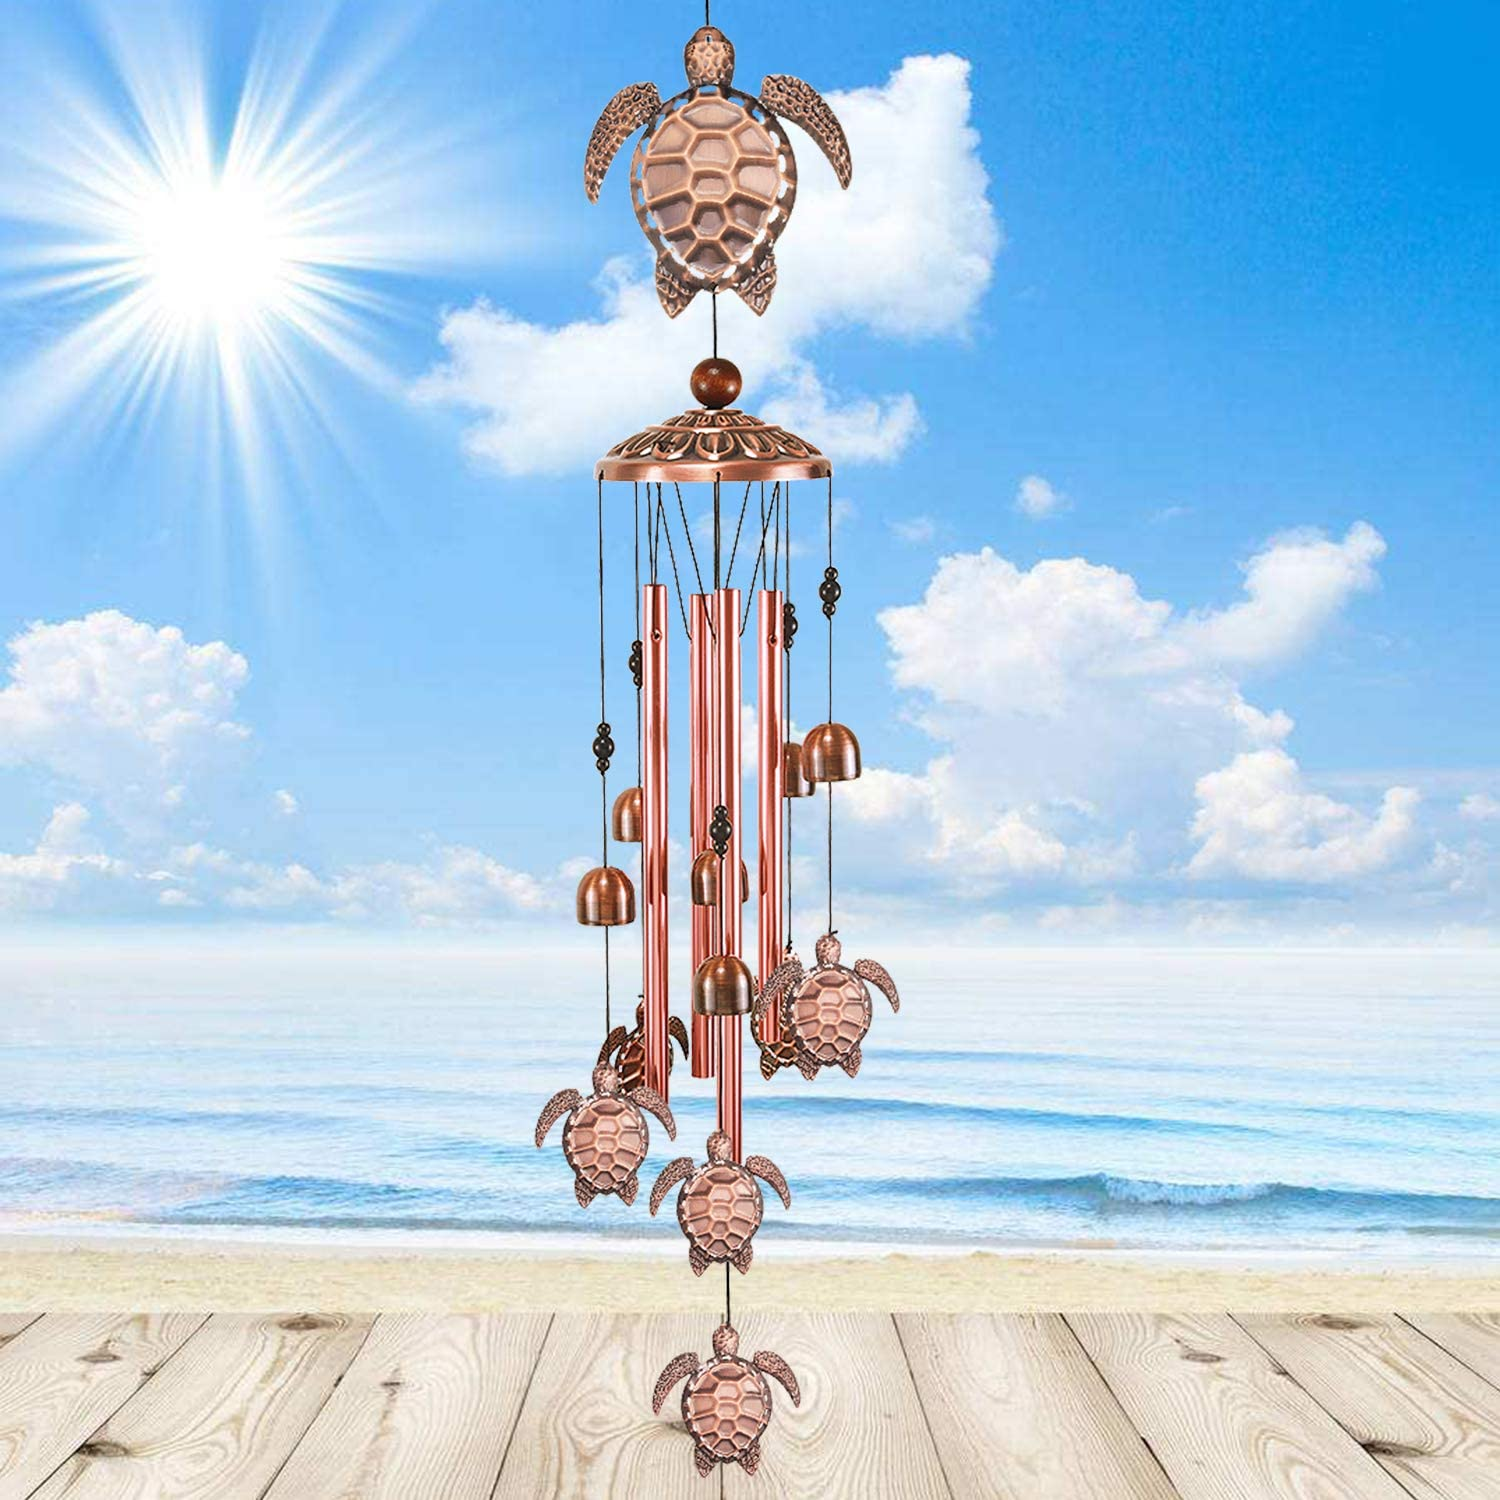 YMXBL Wind Chime Outdoor Turtle Wind Chimes Decoration, Tortoise Wind Bell Decor, Tortoise Windchimes With 4 Tubes & 6 Bells, Turtle Wind Catcher, Aluminum Chime, Garden Mobile Windchime, Gift for Mom